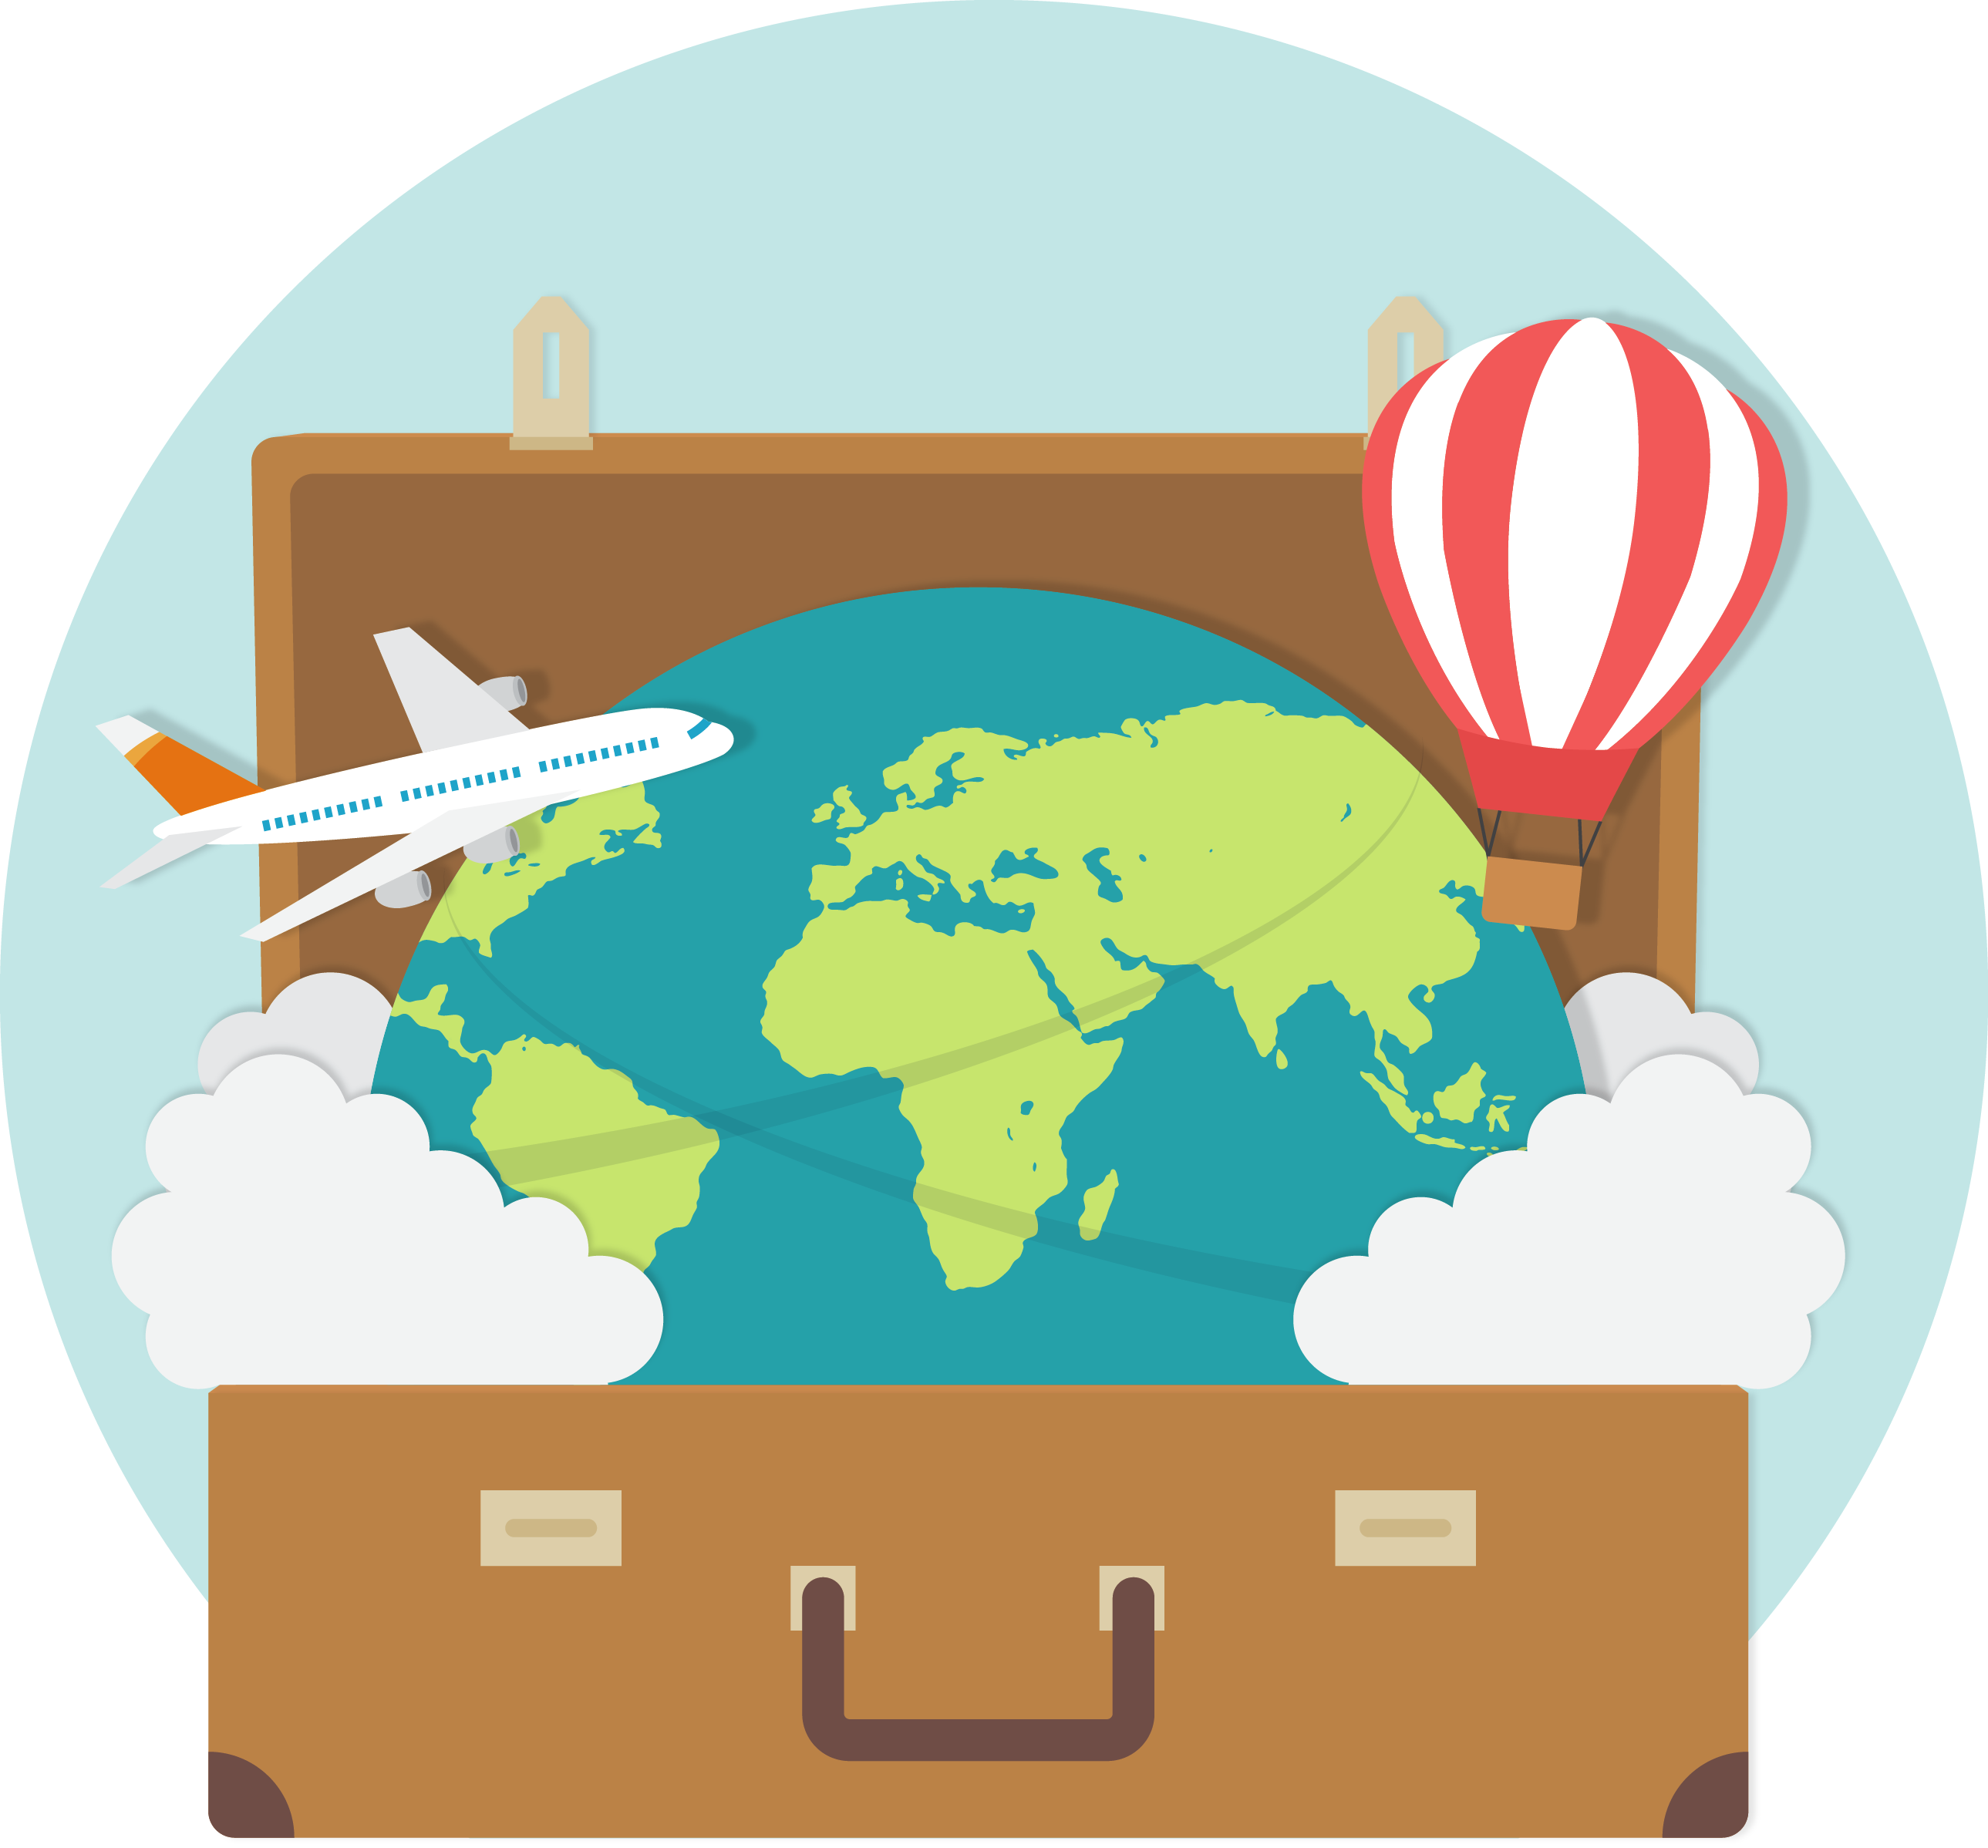 Tourist clipart travel service. Translation services for the